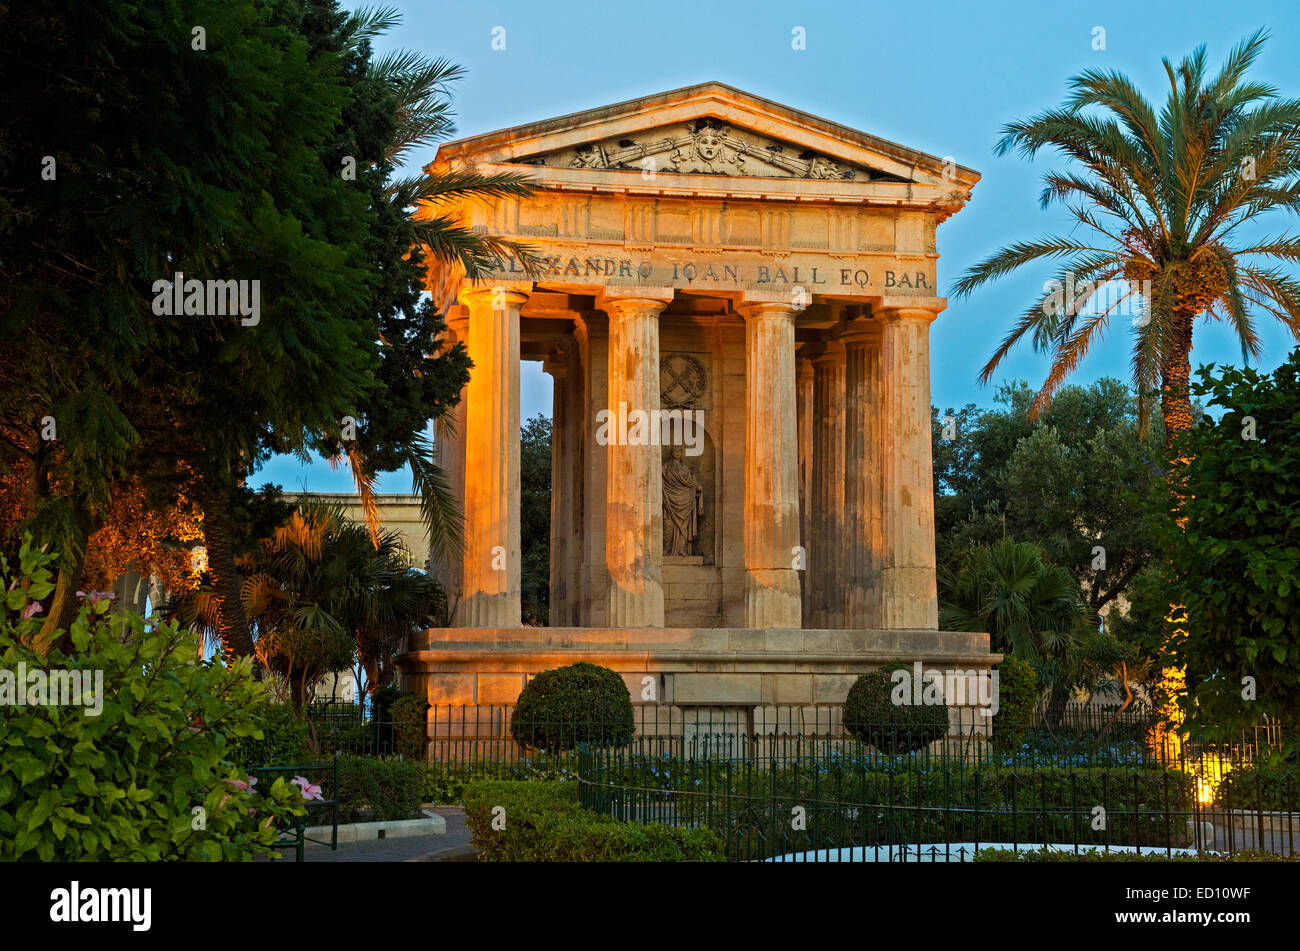 Monument to Alexander Ball in the Lower Barracca Gardens, Valletta, Malta - Stock Image